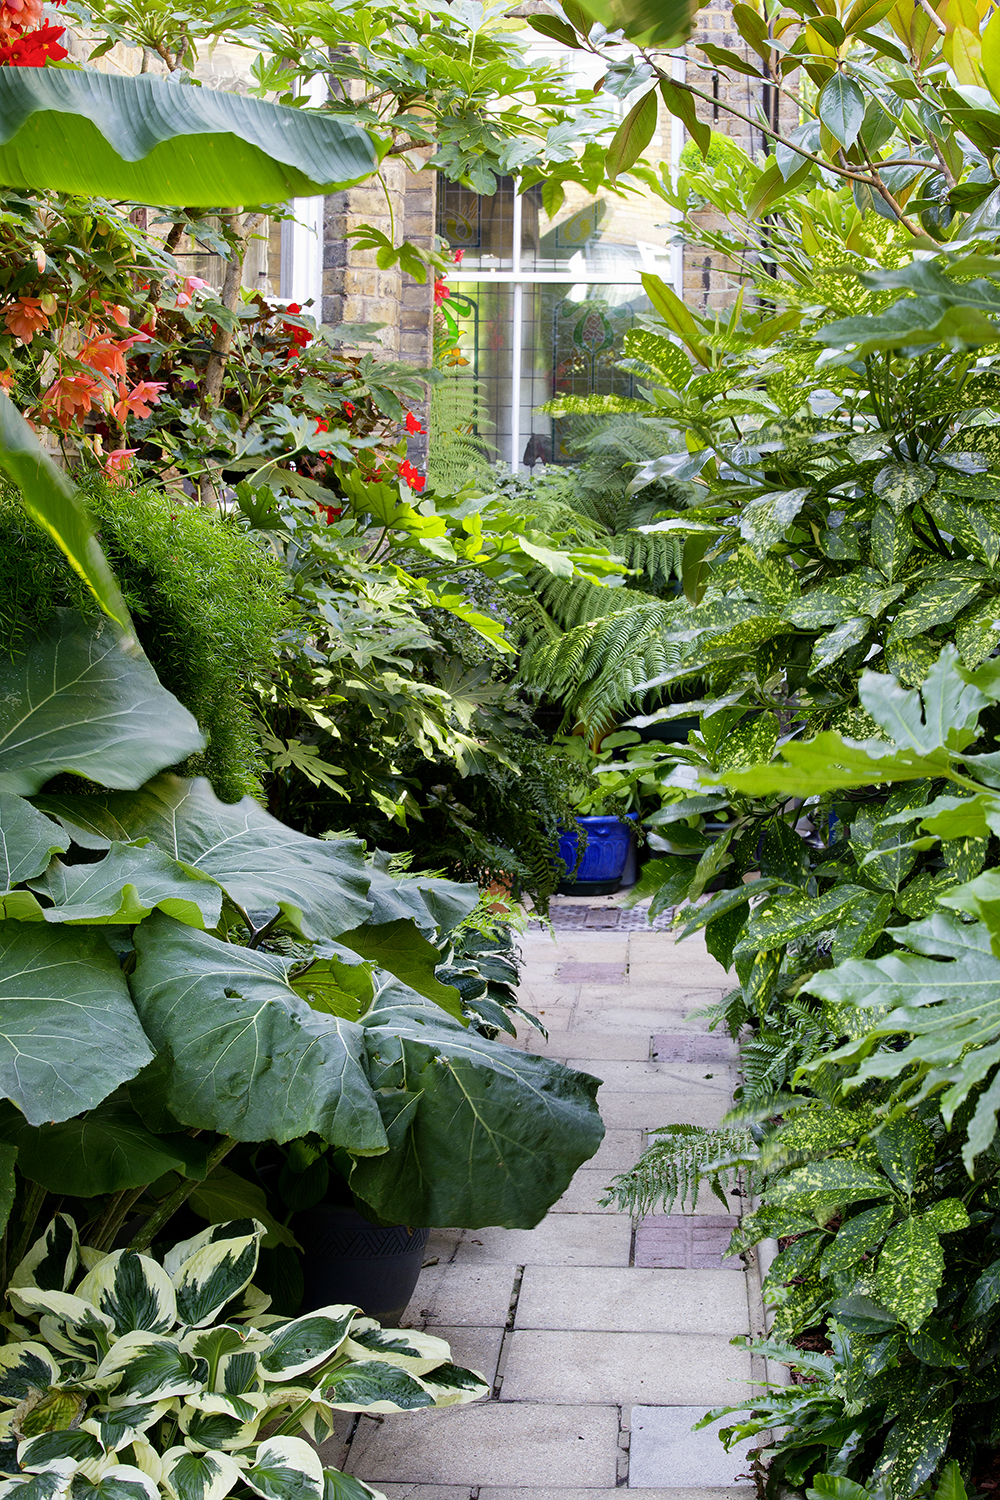 Hostas, spotted laurel ( Aucuba japonica ),  Petasites japonica gigantea  and  Fatsia japonica  enjoy the shady side passage